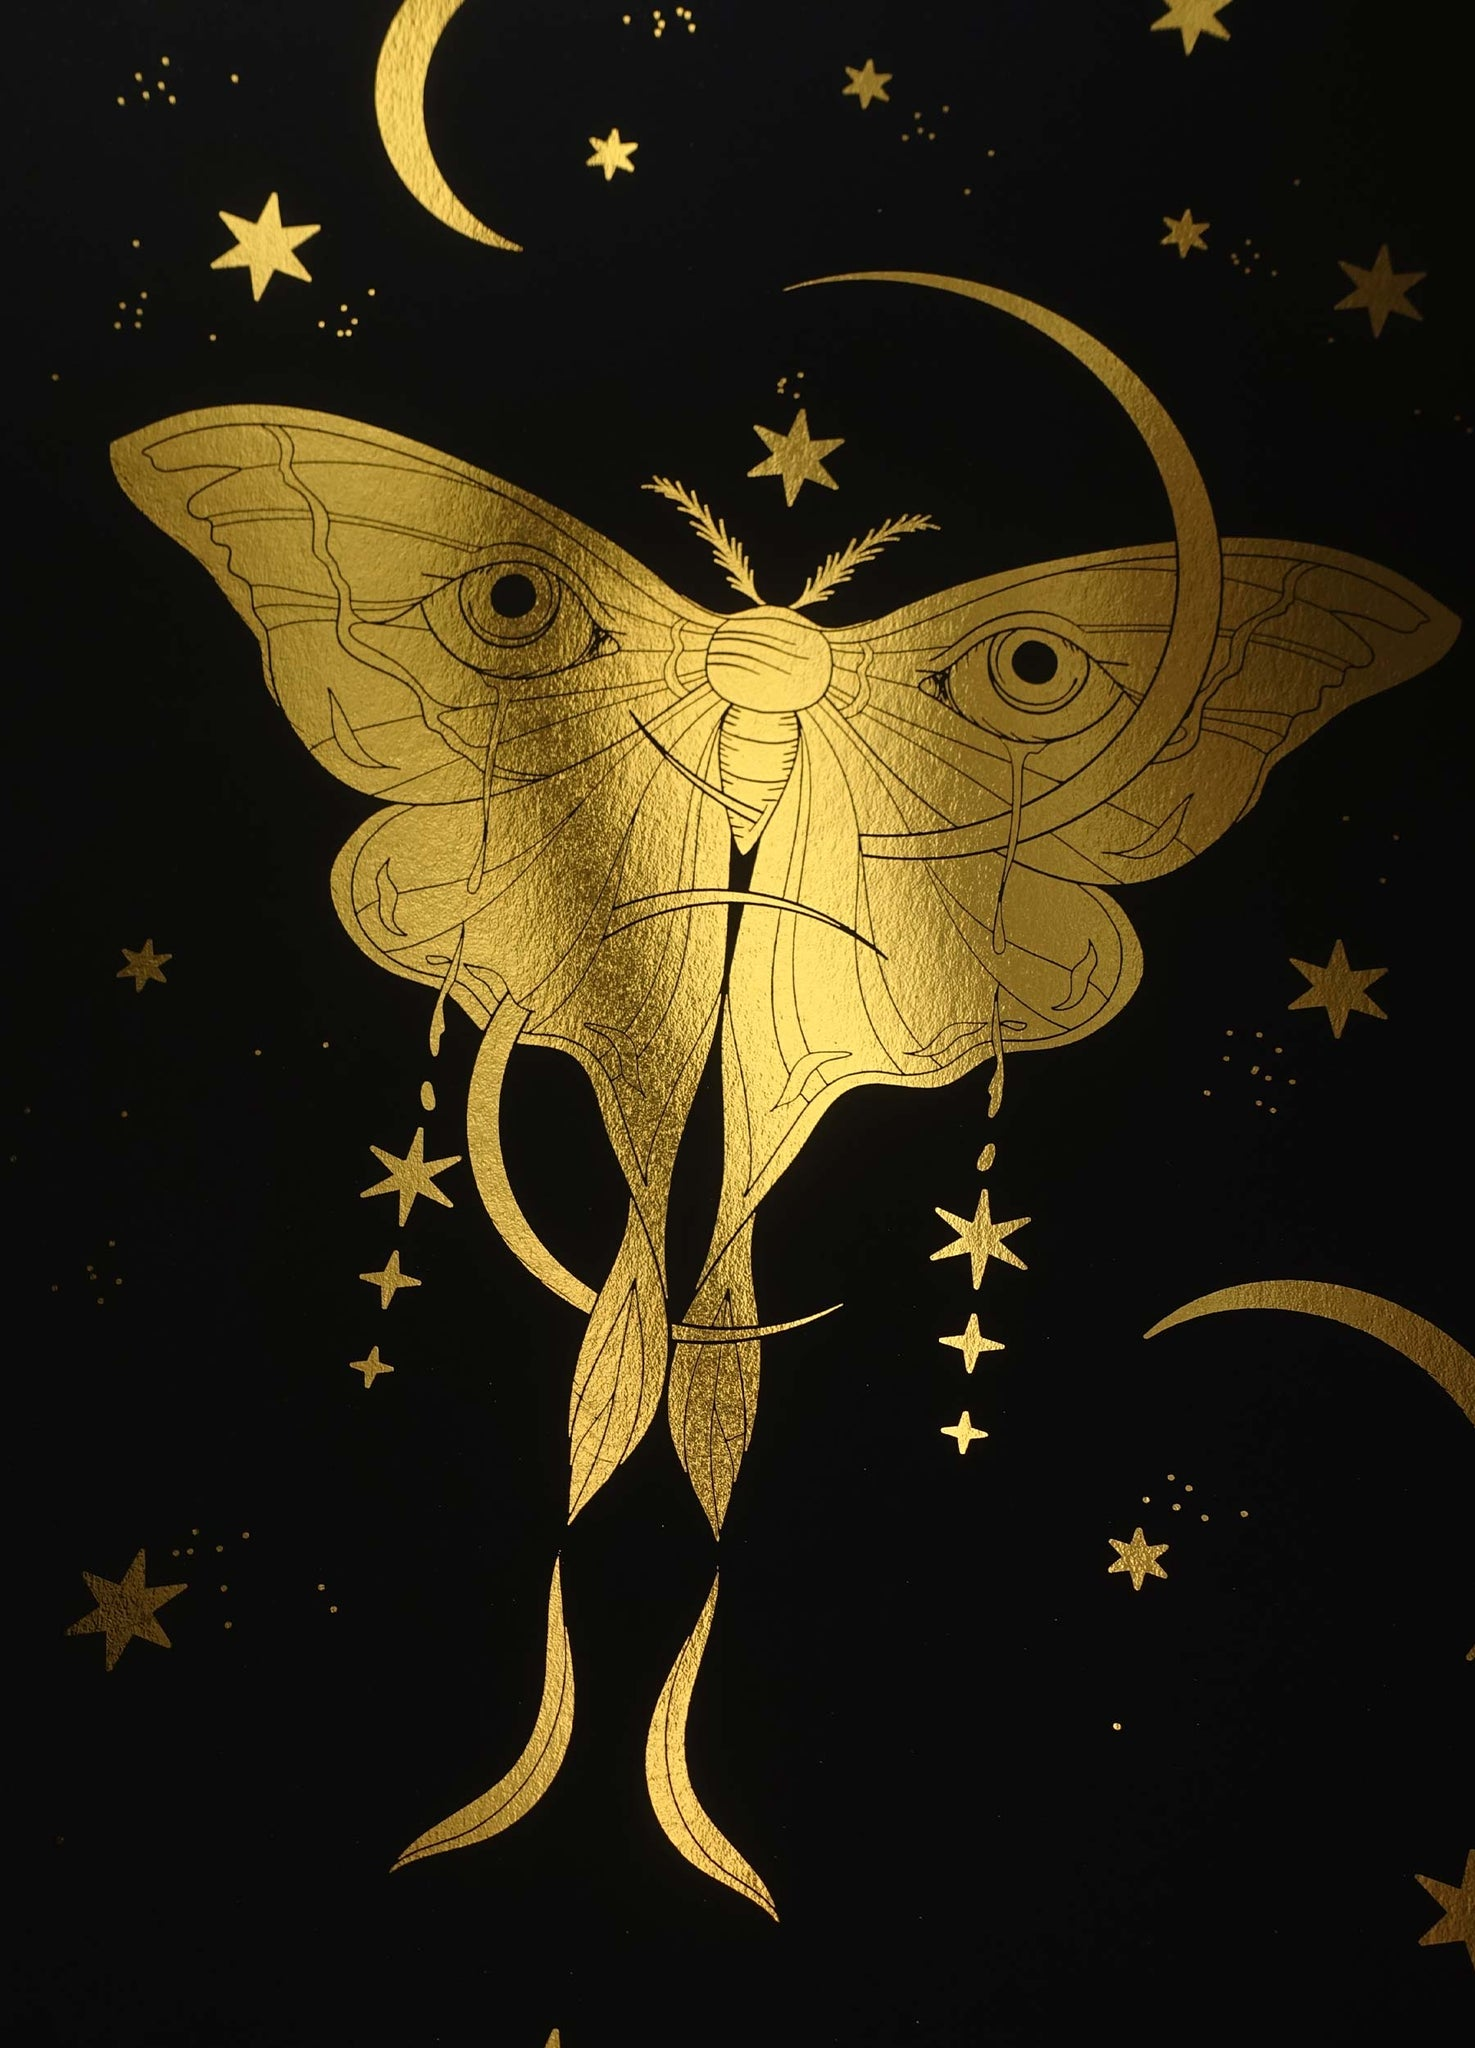 Moon Moth gold foil art print on black paper by Cocorrina & Co